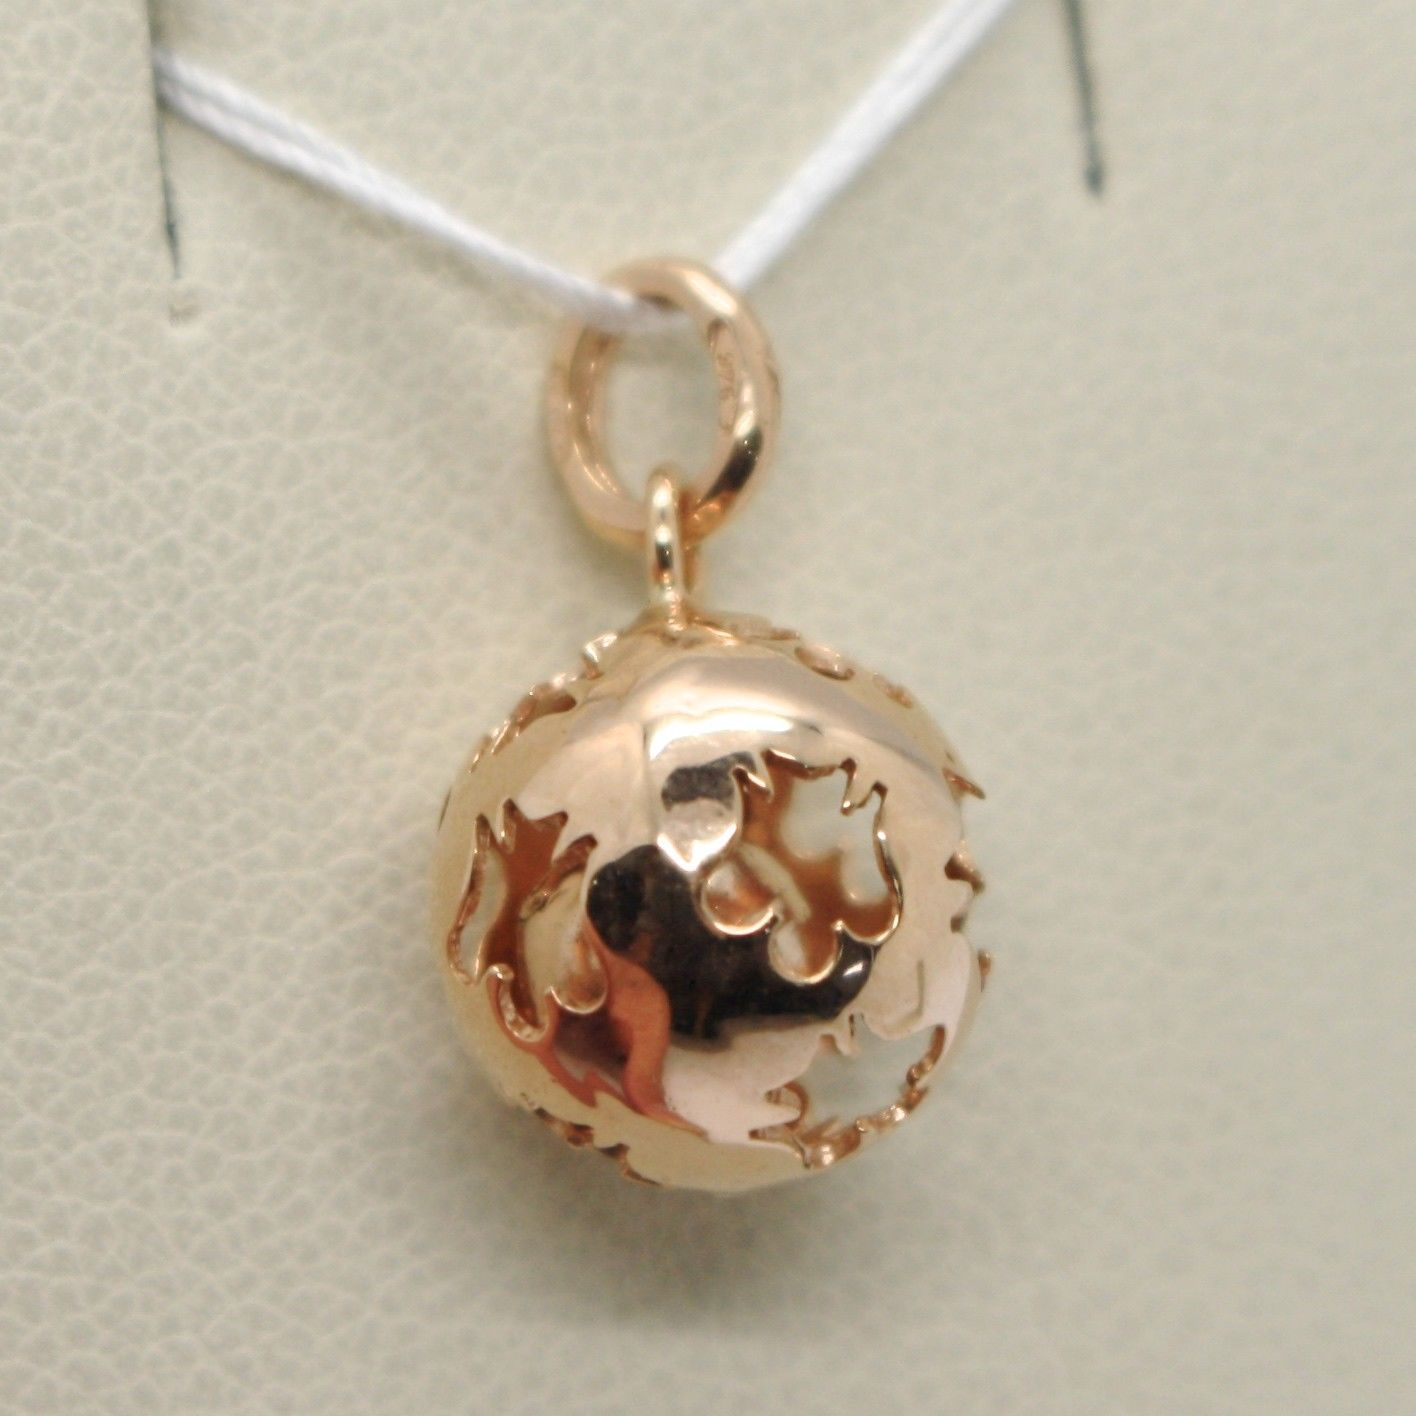 Pendant in Rose Gold 9K, Mexican Bola, with Cord, Roberto Giannotti, NKT110